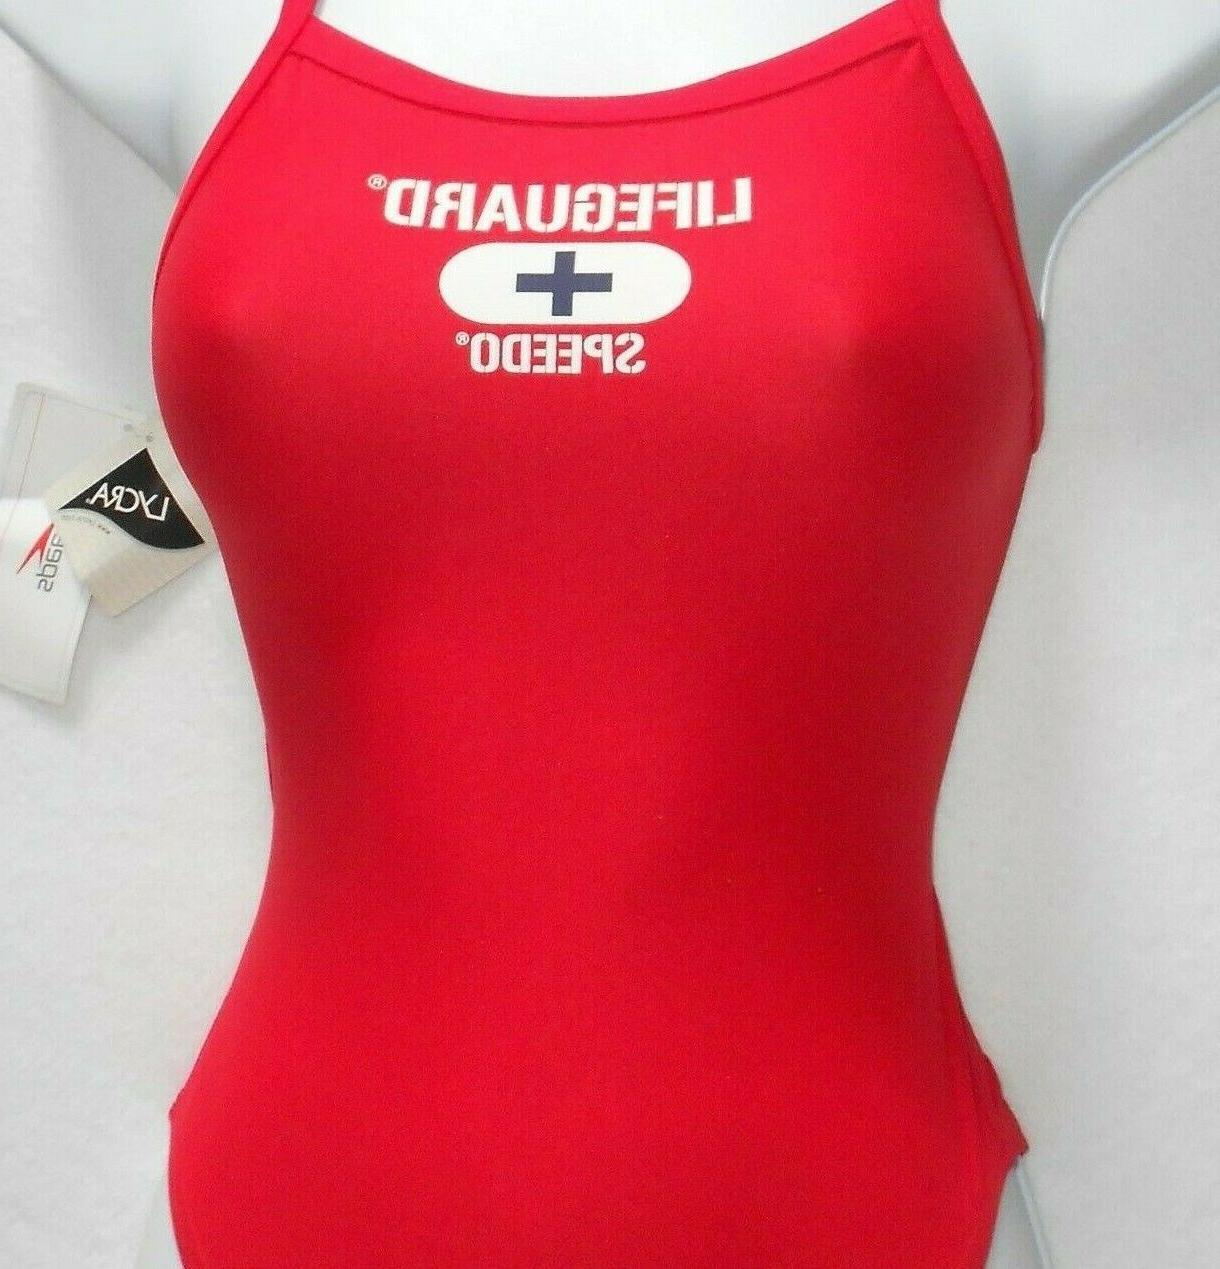 new swimsuit womens red 2 4 14